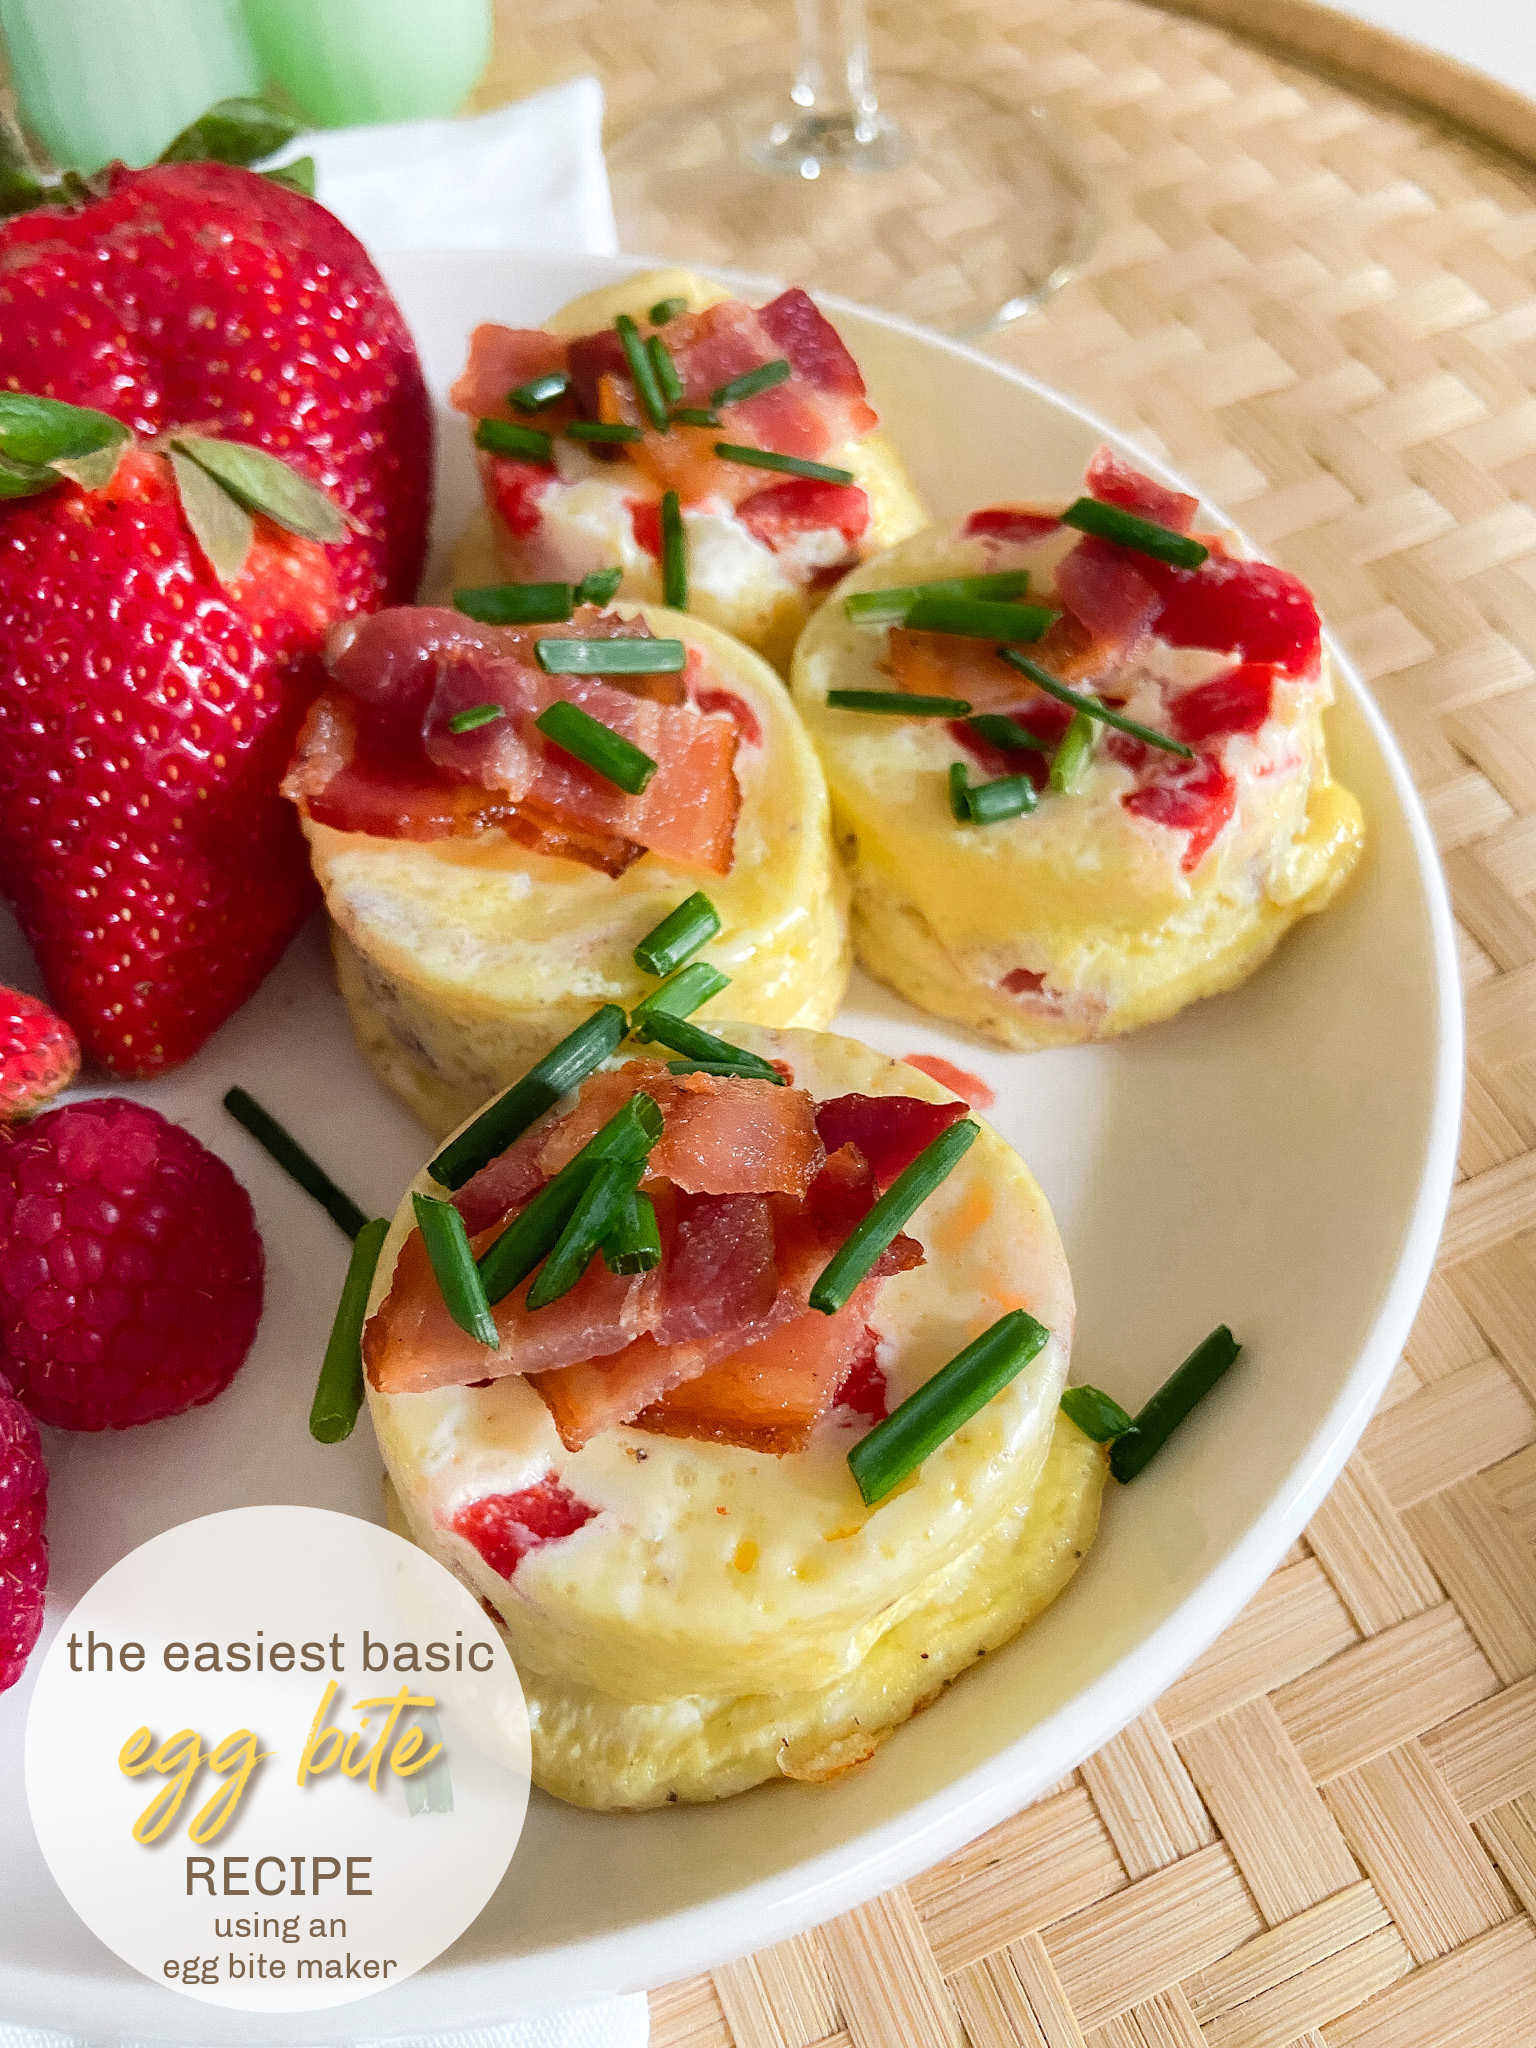 Bacon and Red Pepper Egg Bites. Egg bites are perfect for breakfast or anytime. You can make your own in no time with this easy low carb, protein filled recipe using an Egg Bite Maker.